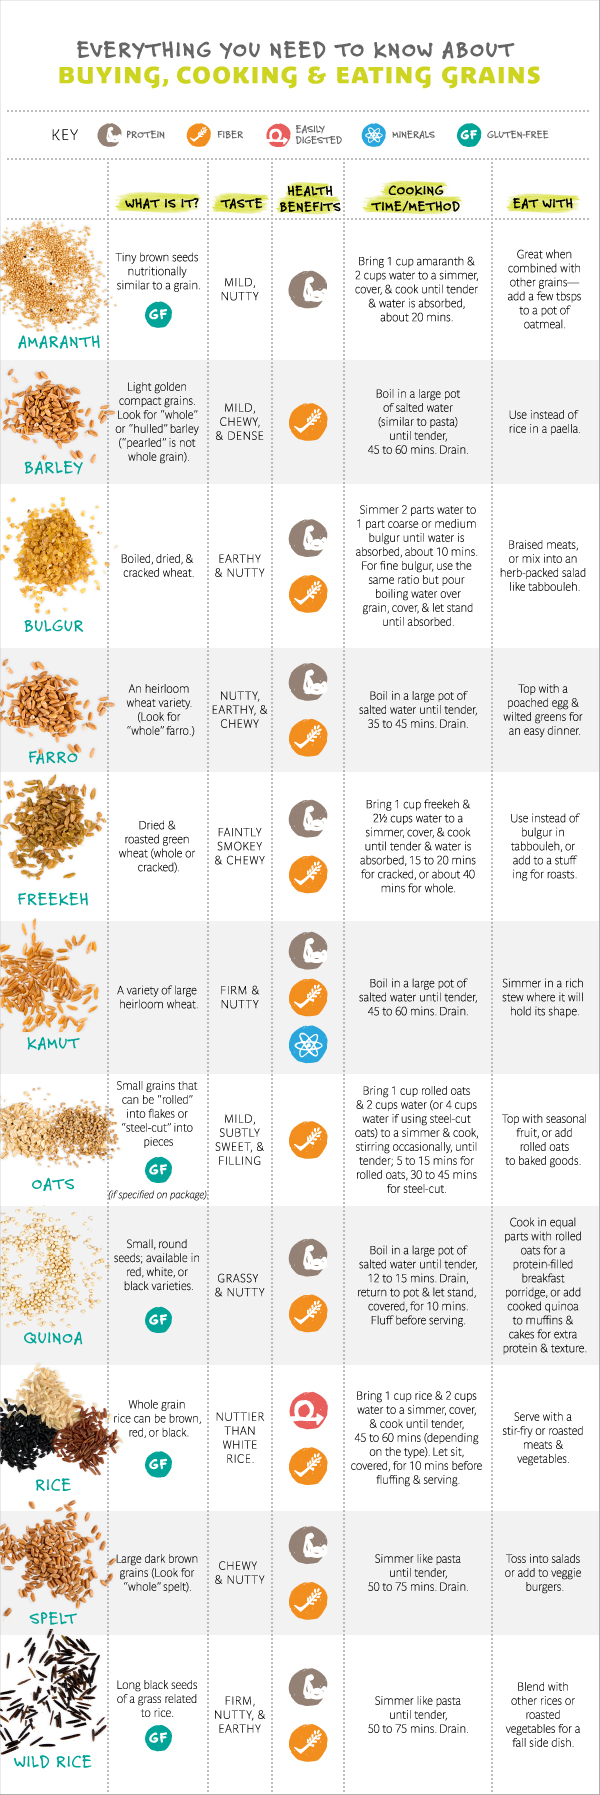 Different types of grains - types of grains chart with whole grains and benefits